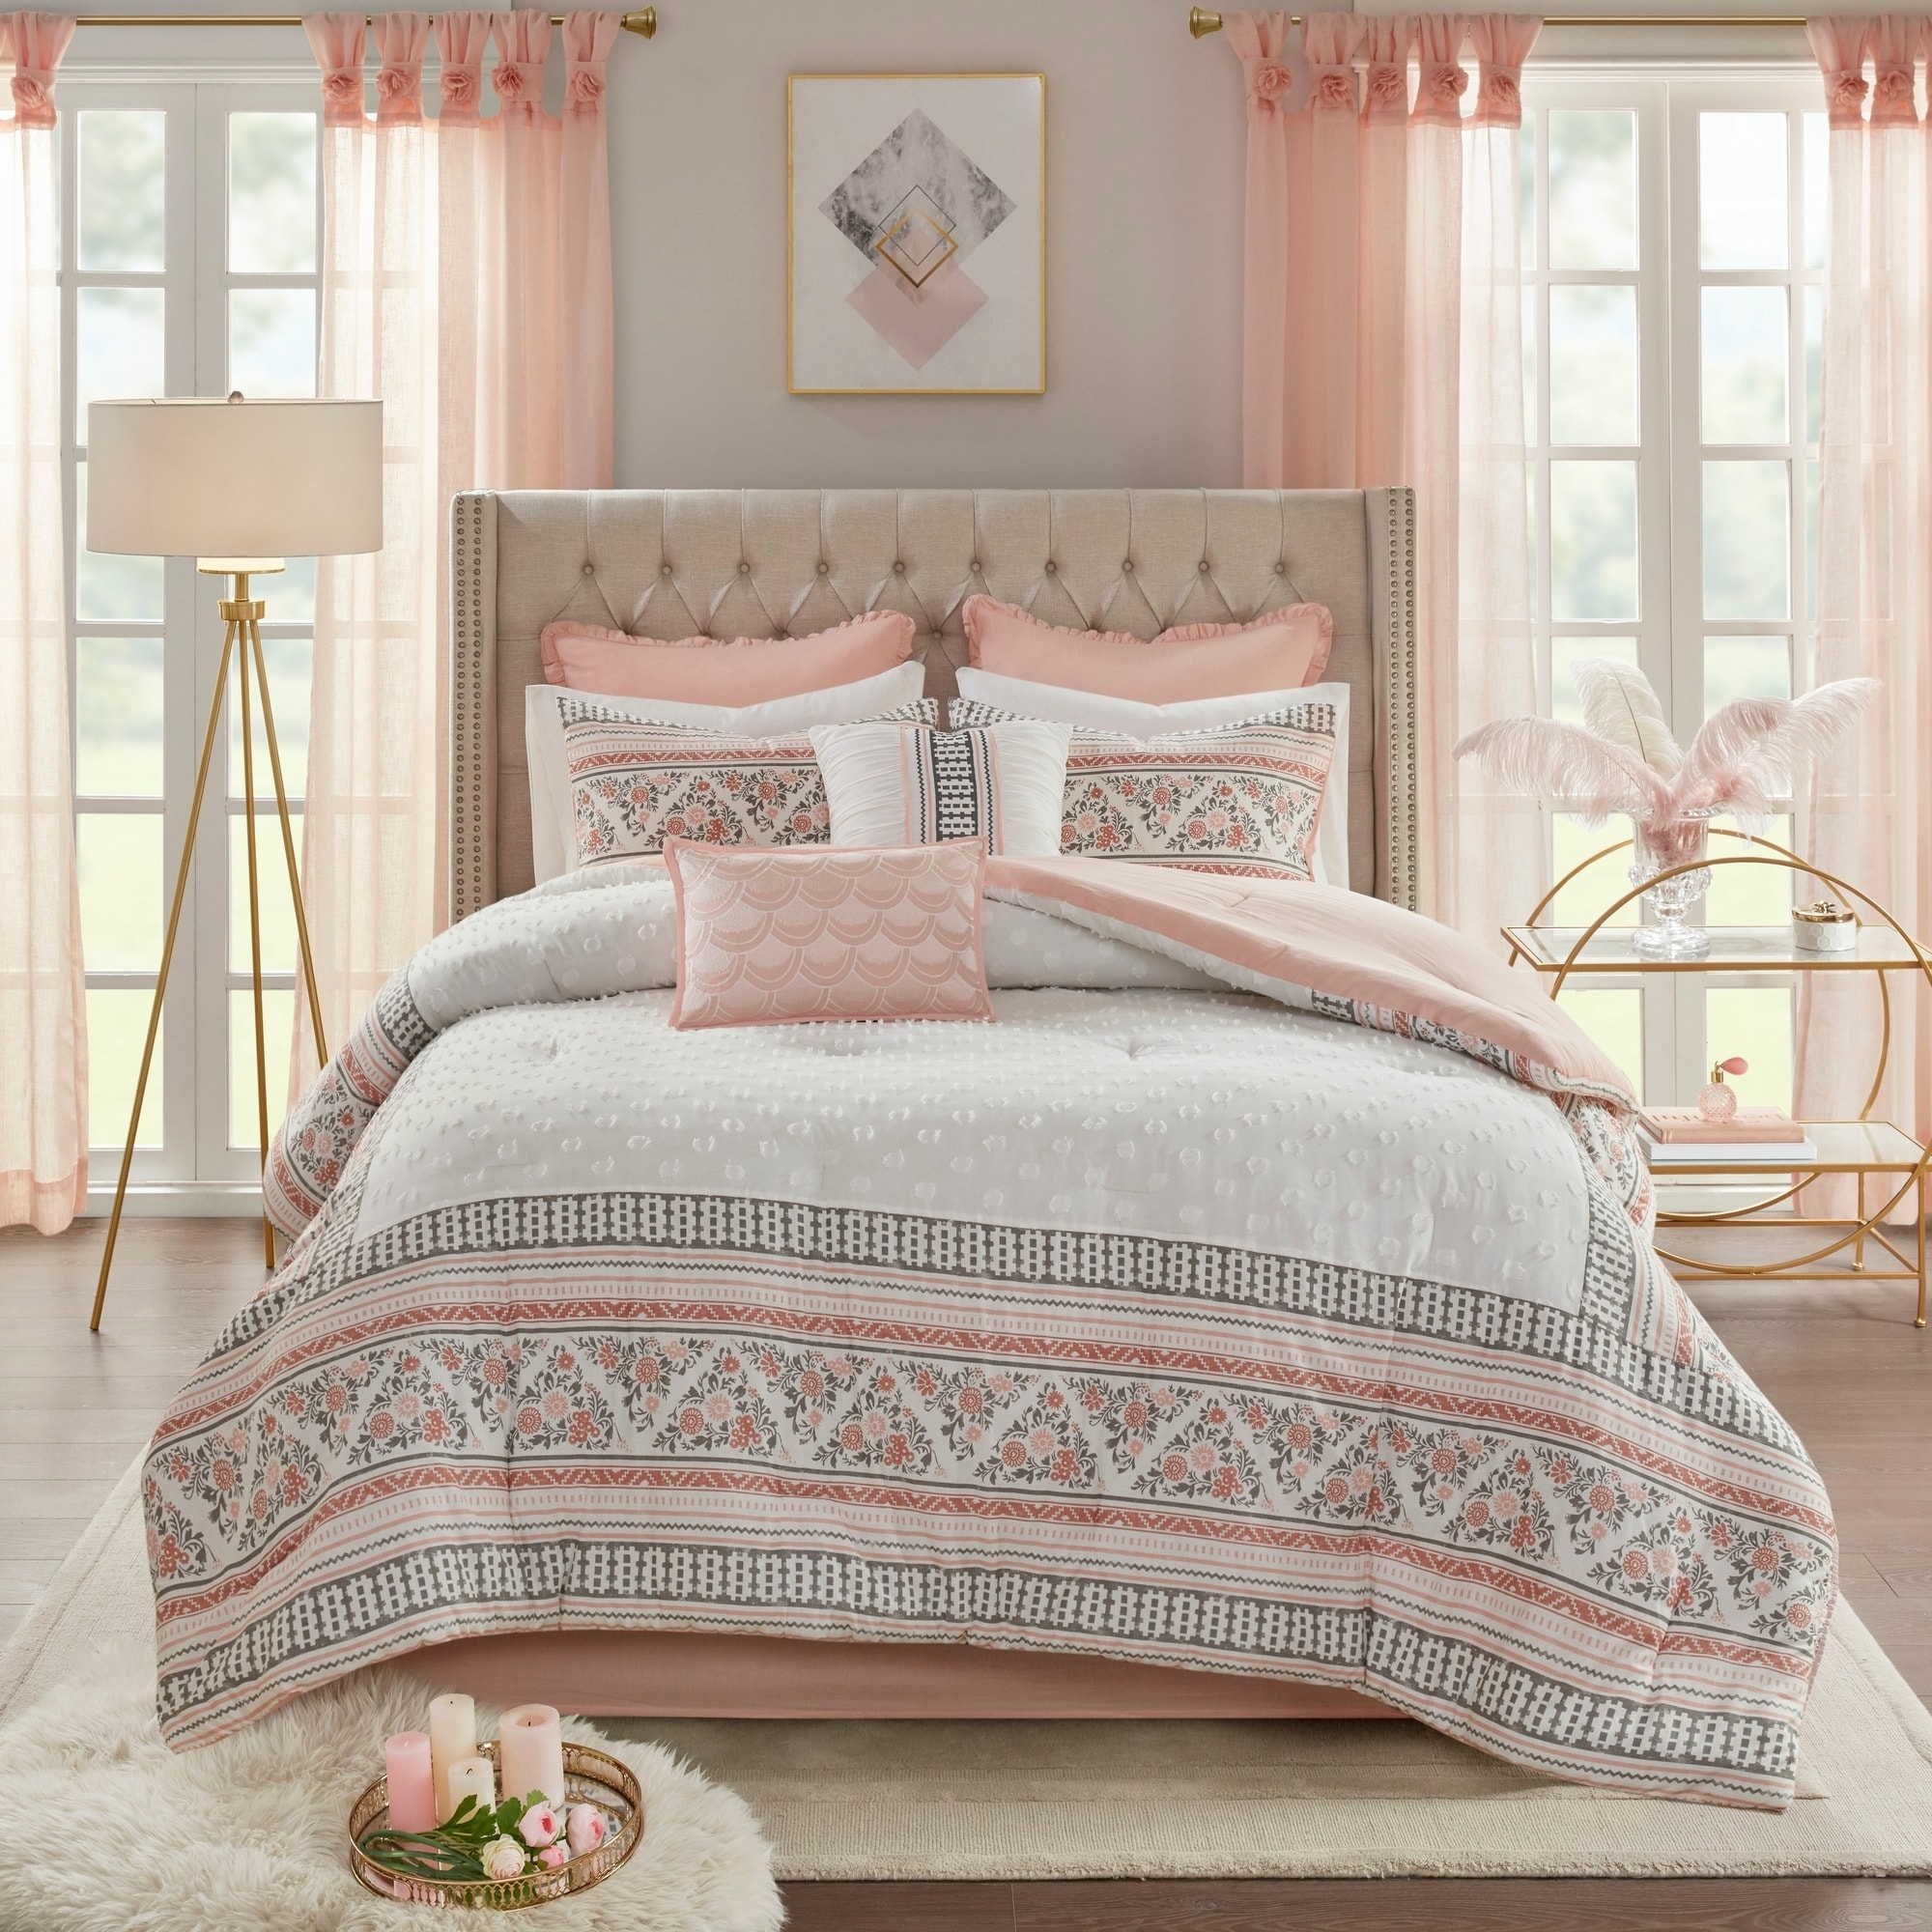 Madison Park Esther Dusty Rose White 8 Piece Cotton Printed Clip Jacquard Comforter Set Overstock 28283198